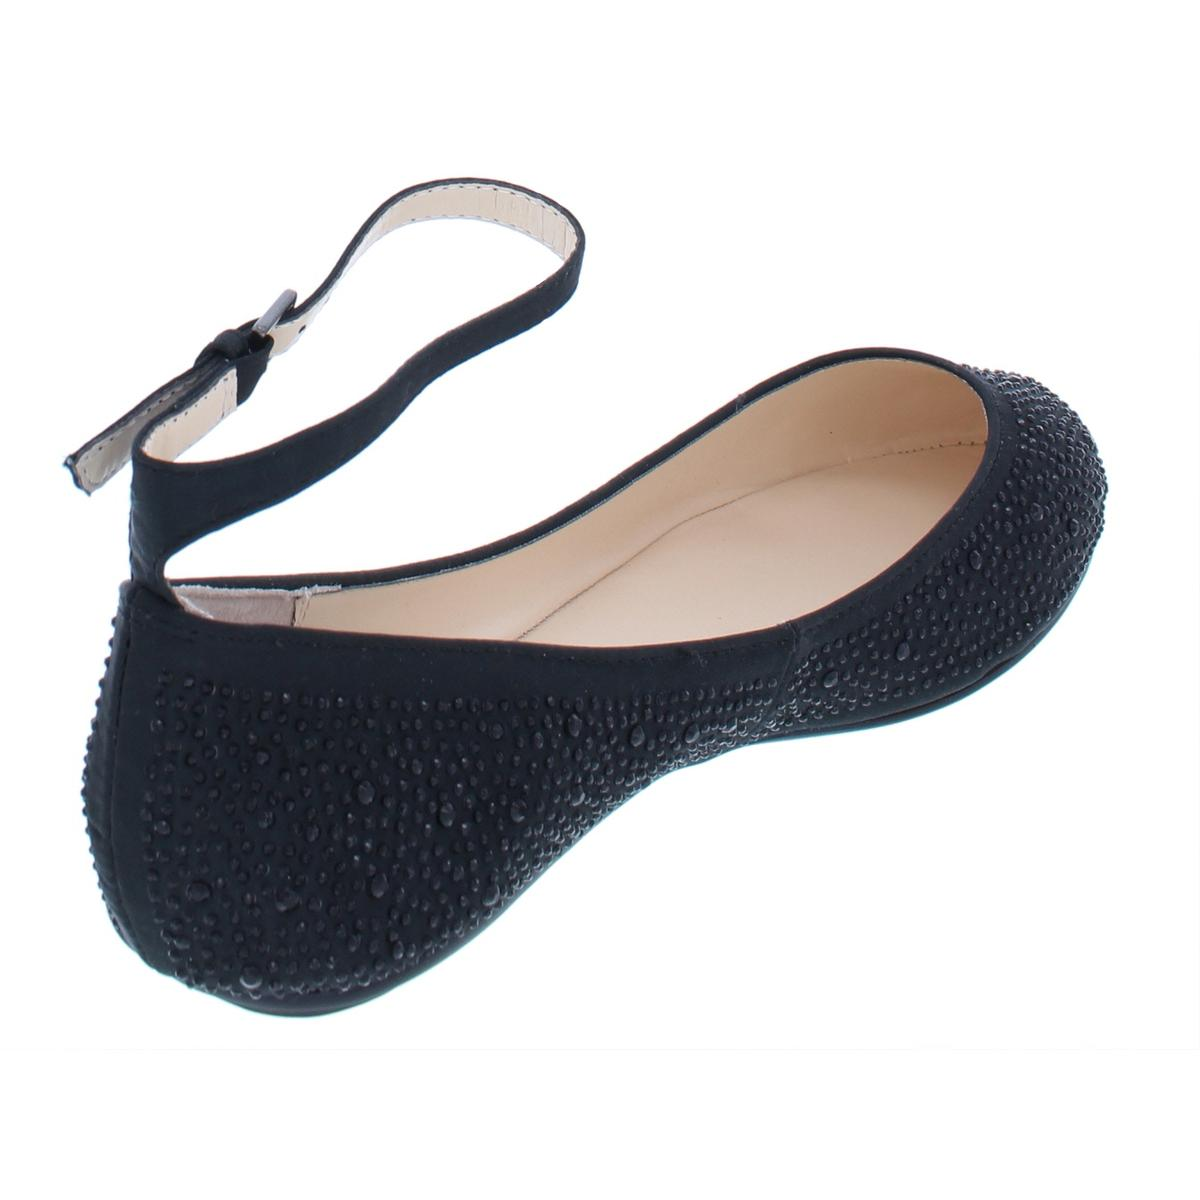 Betsey-Johnson-Womens-Joy-Embellished-Ankle-Strap-Ballet-Flats-Shoes-BHFO-3911 thumbnail 6